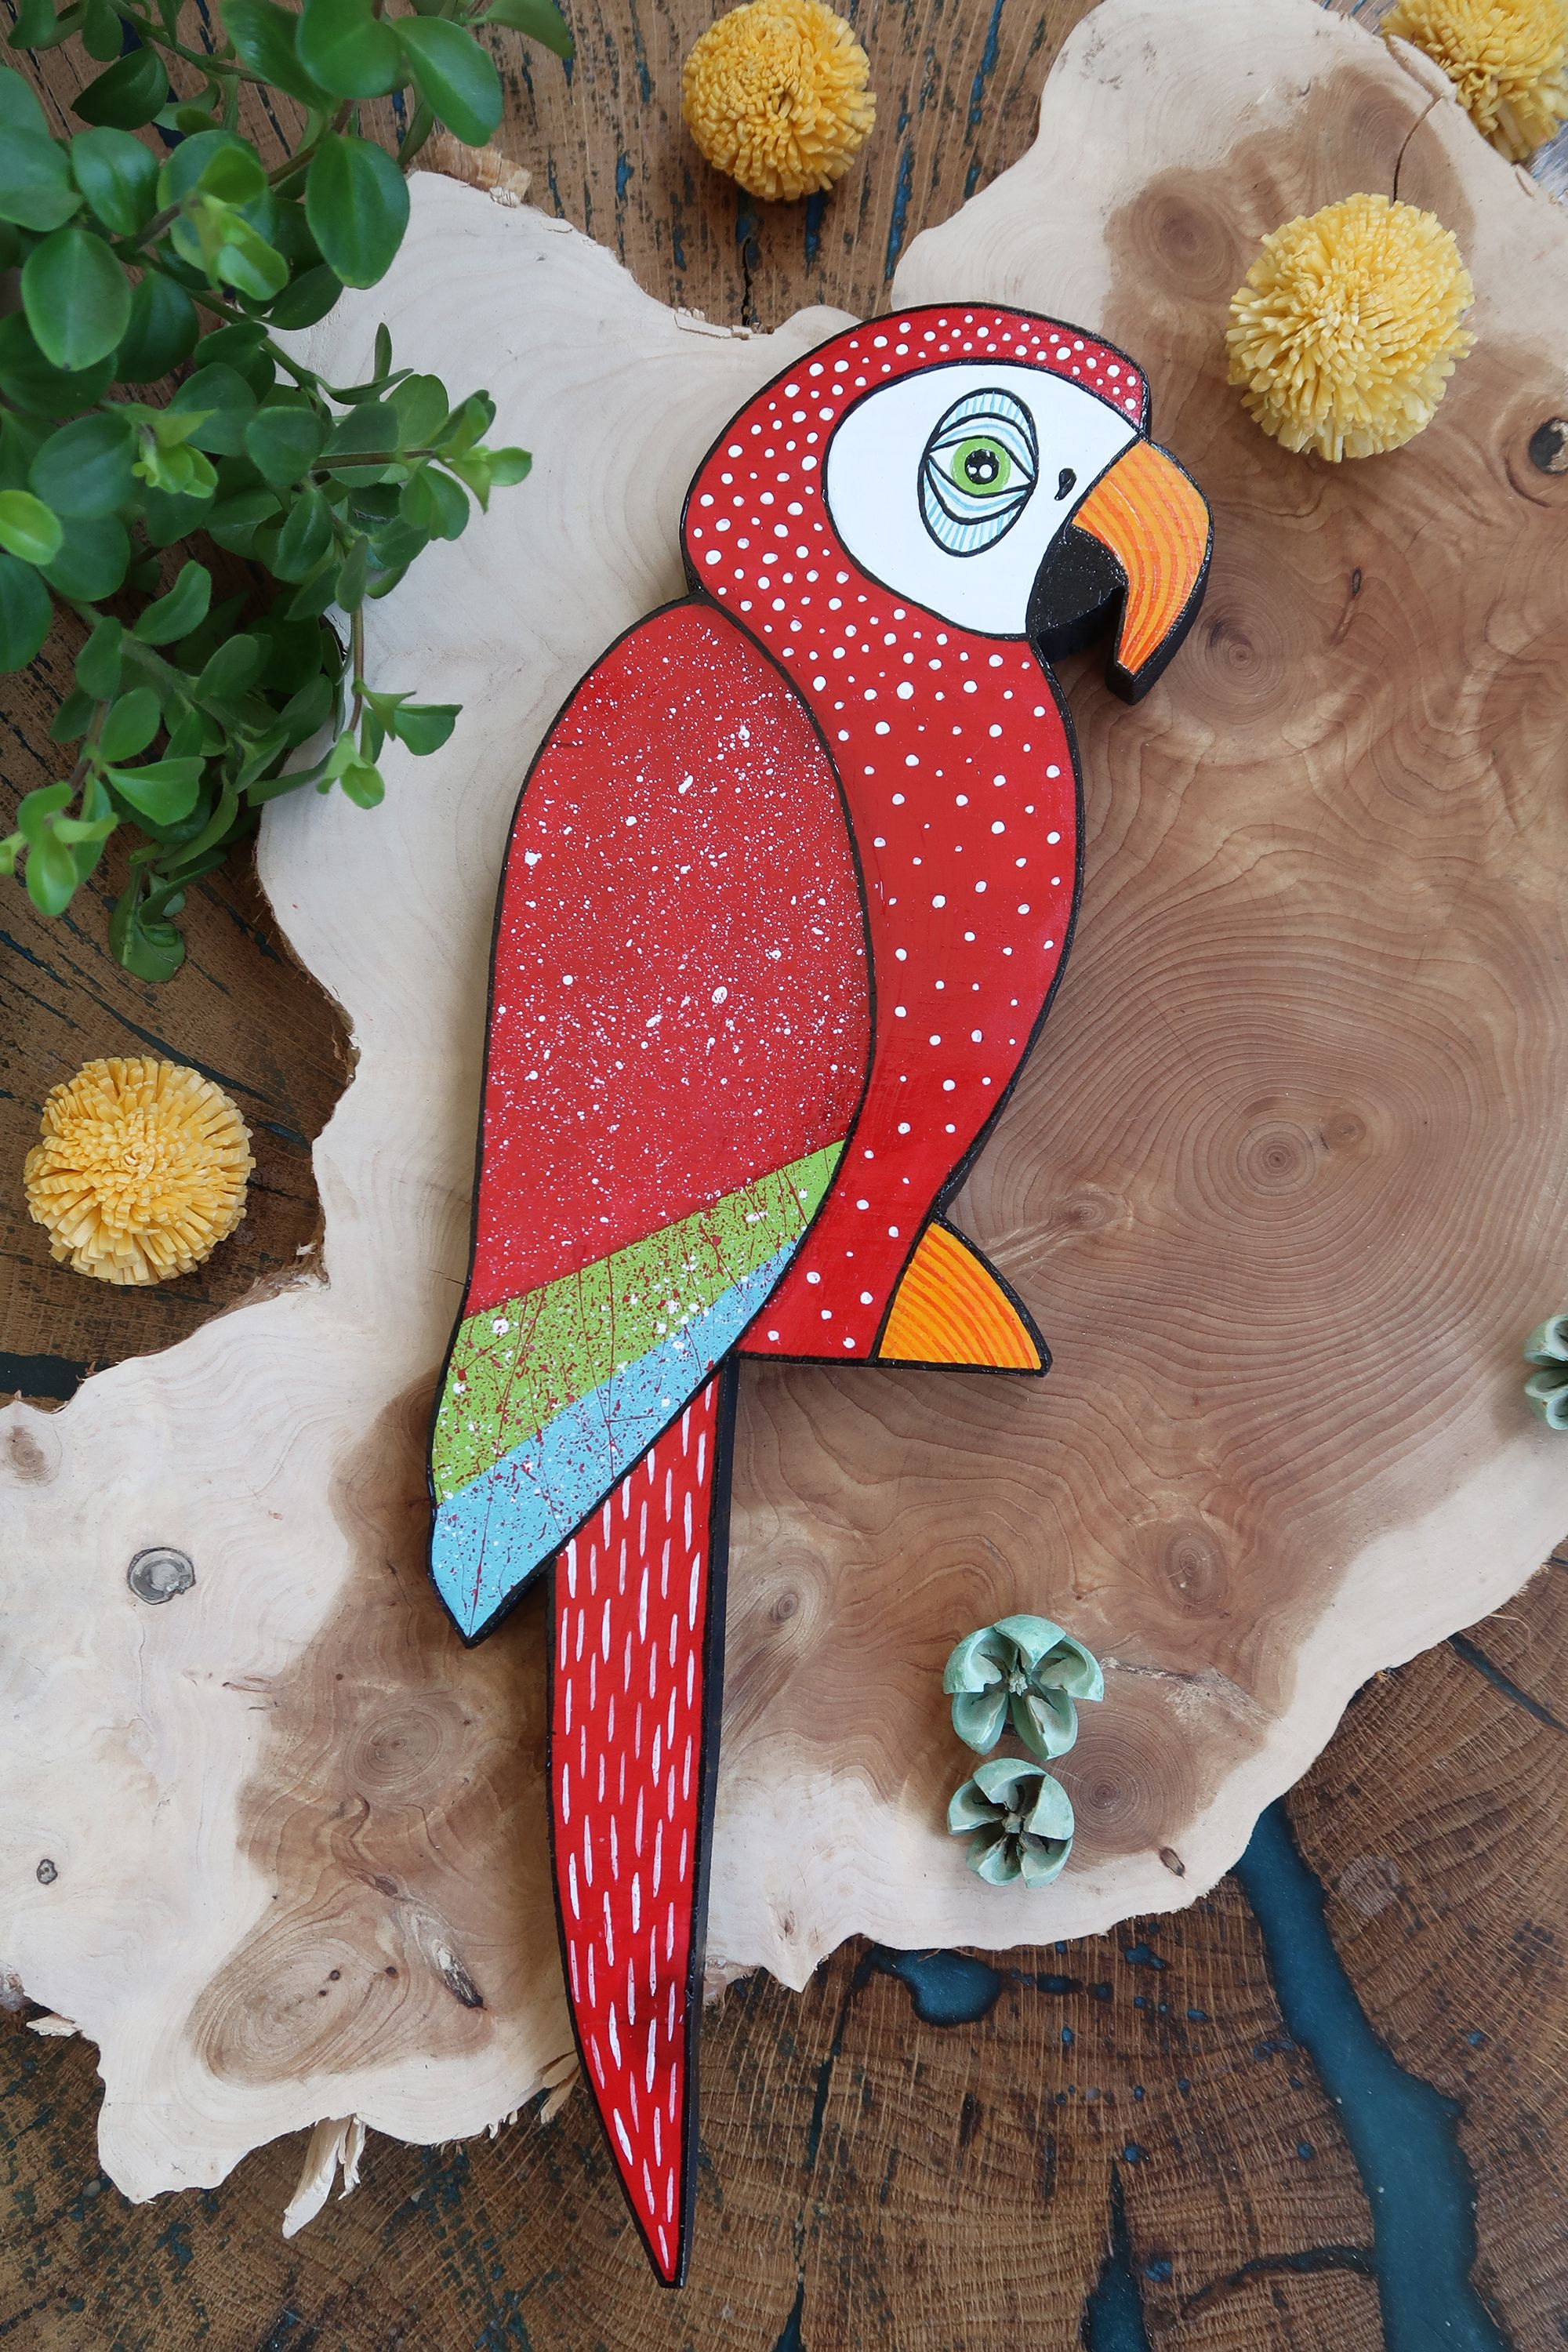 Red Parrot Home Decor Decoration Ornament Shelf Wall Jungle Inspired Wooden Hand Painted Bird Hand Painted Folk Decor Wooden Bird